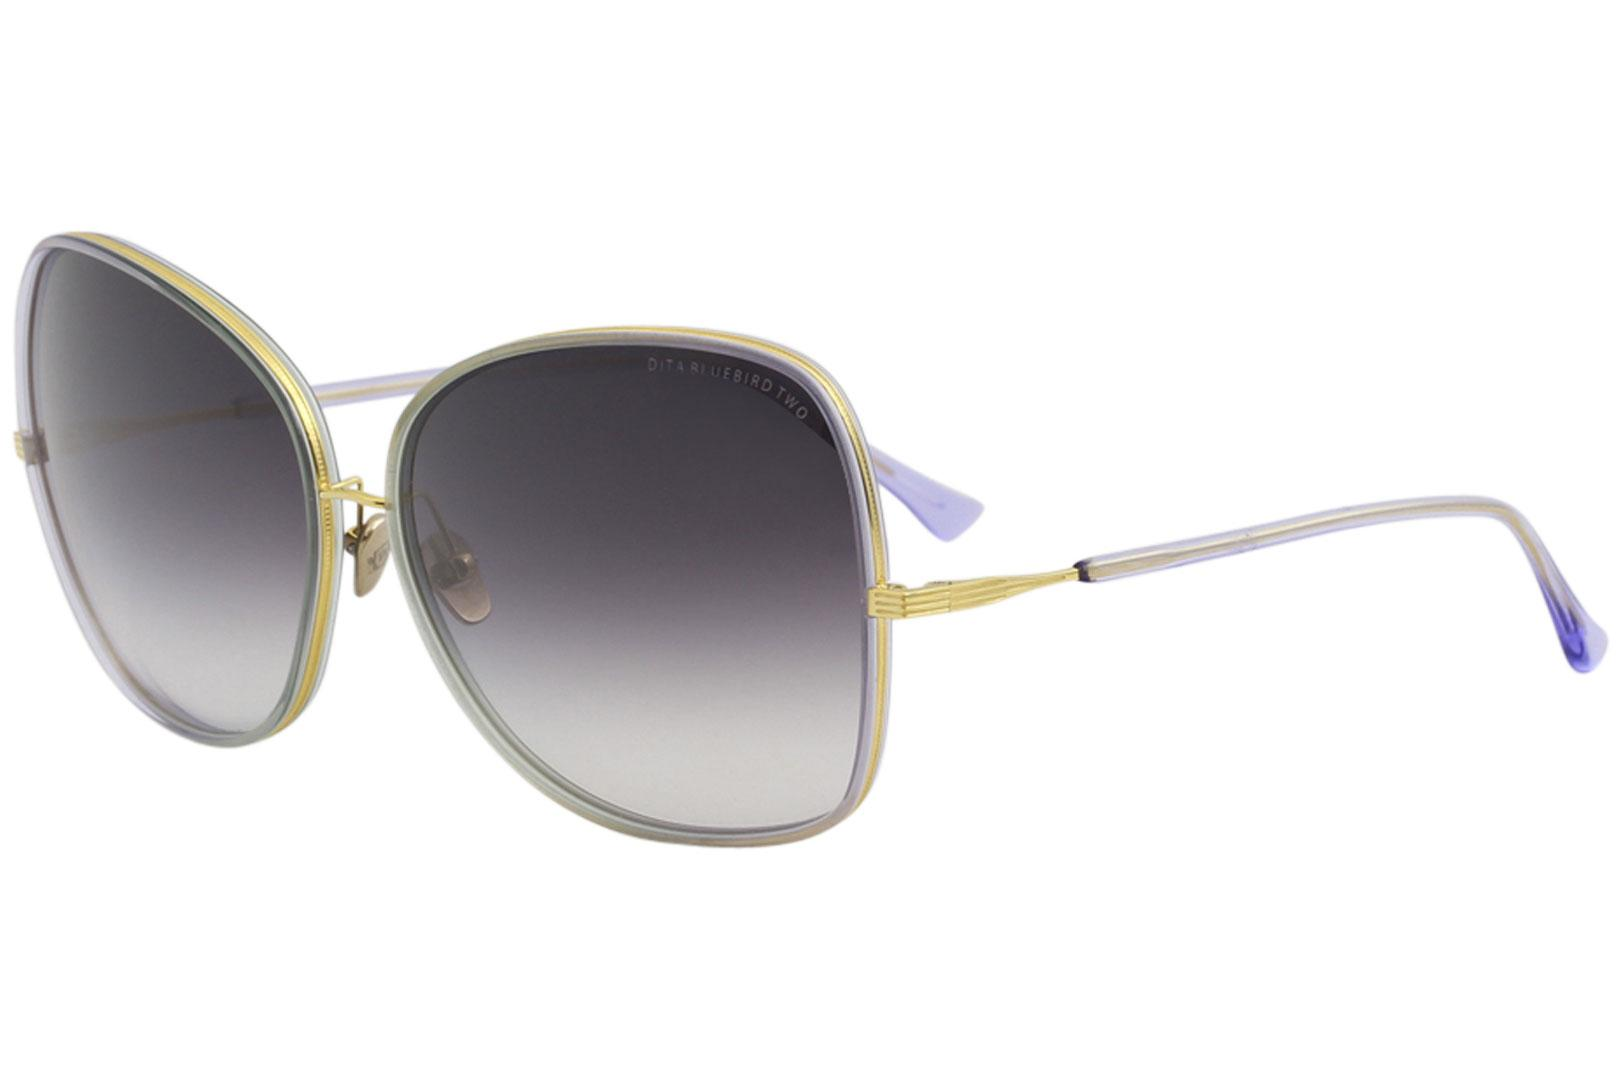 98f75a72c97 Dita Women s Bluebird-Two 21011 12-18K Gold Fashion Square Sunglasses